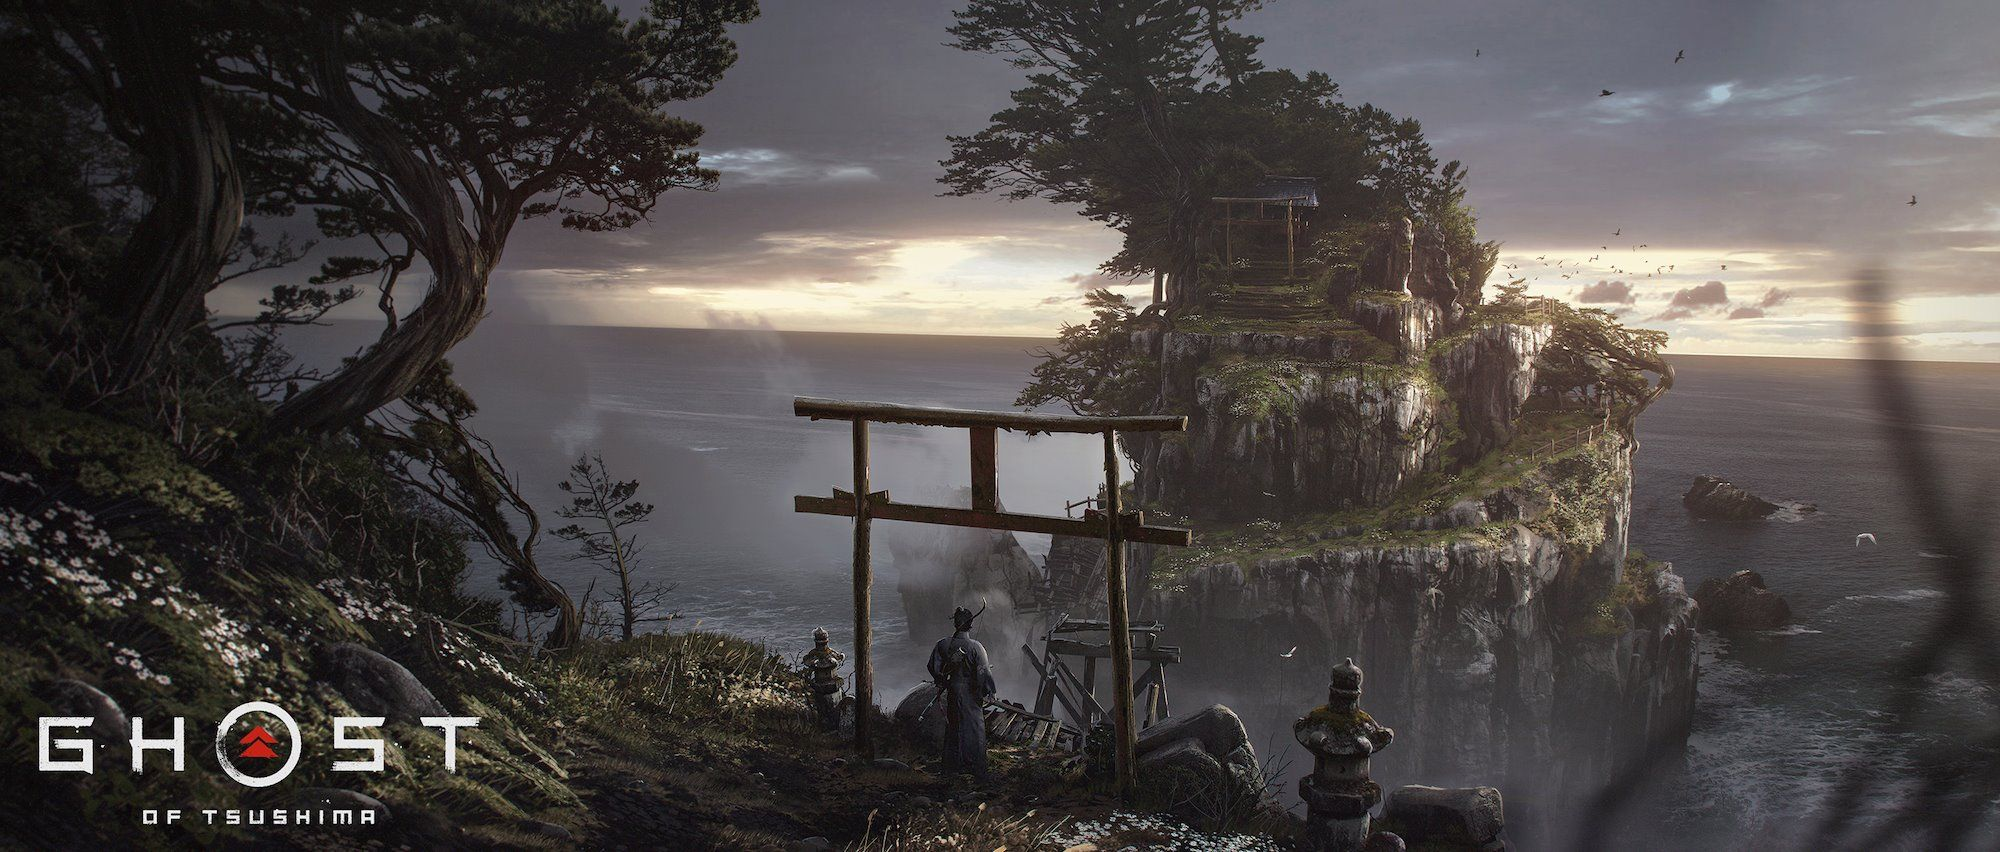 ghost-of-tsushima-concept-artwork-sucker-punch-productions-open-world-action-adventure-sony-playstation-4-ps4